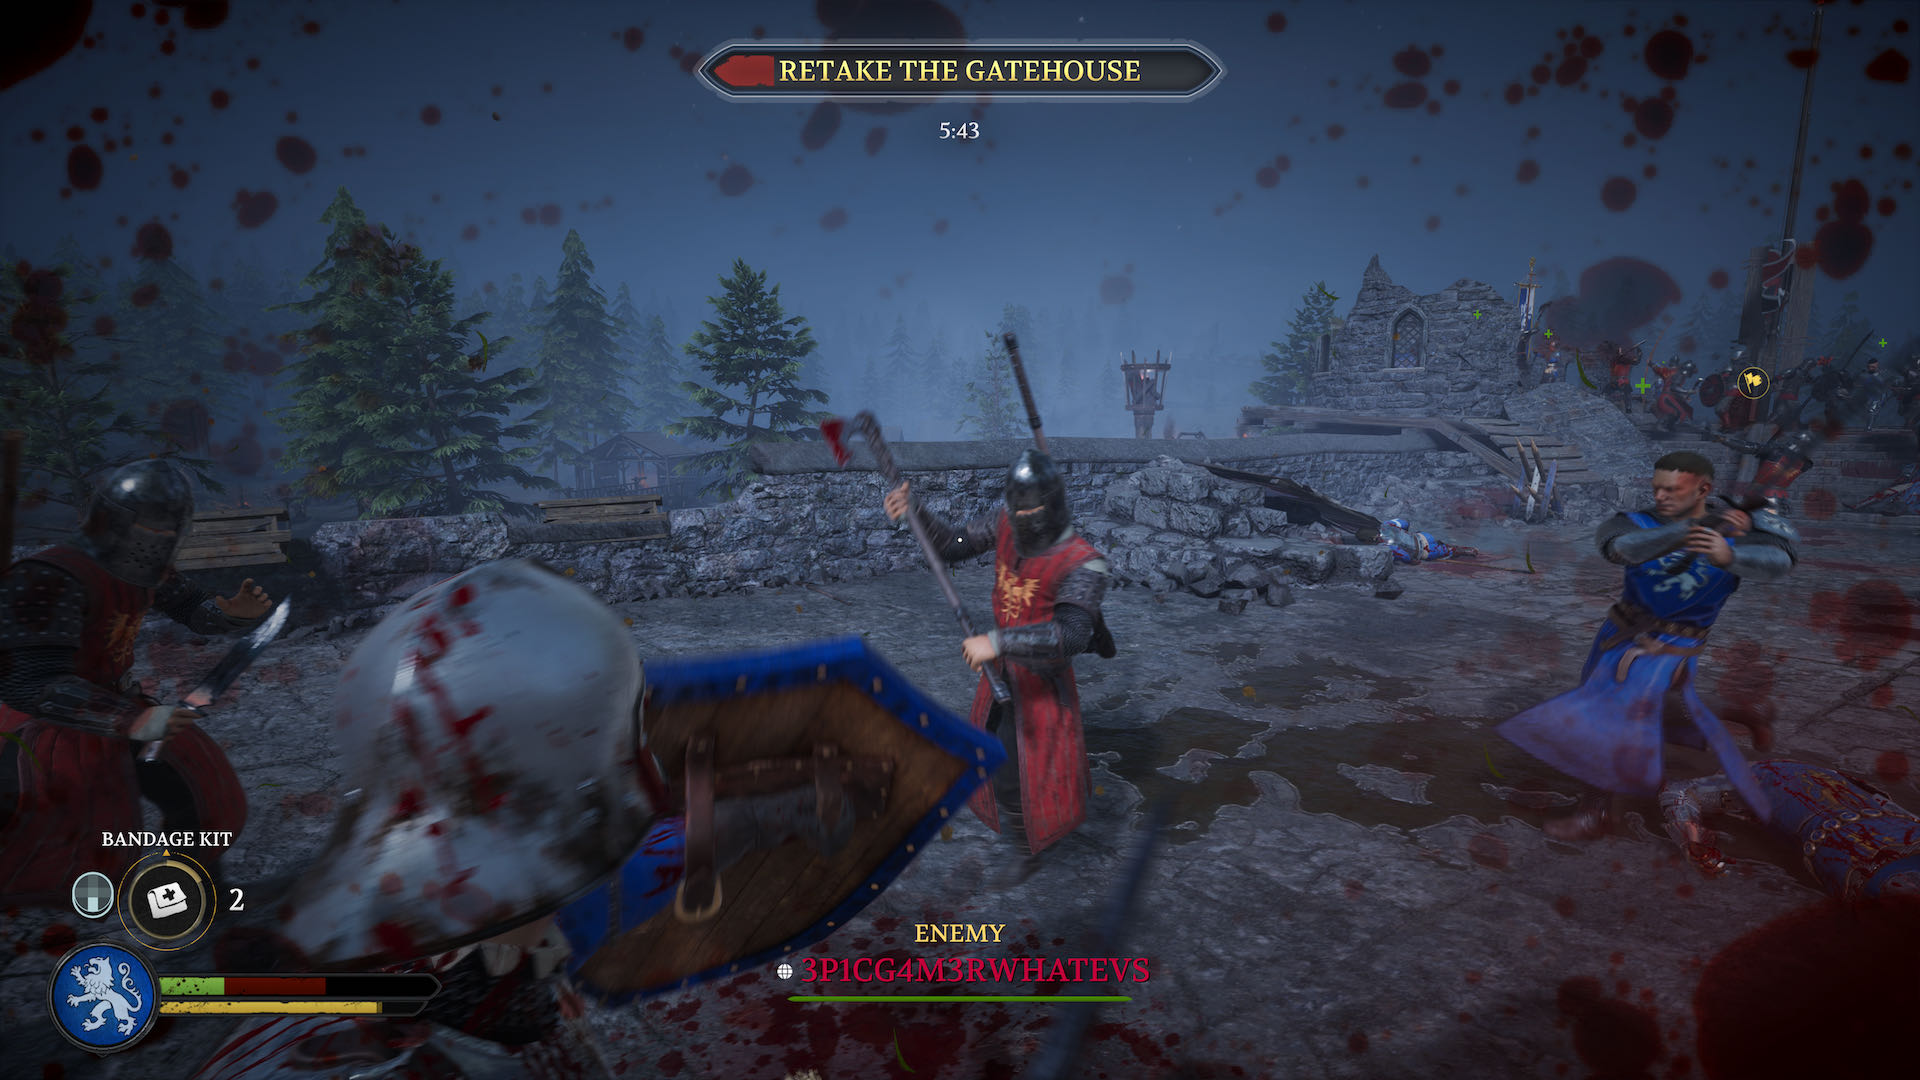 A action shot from Chivalry 2, in battle and attempting to retake a gatehouse.